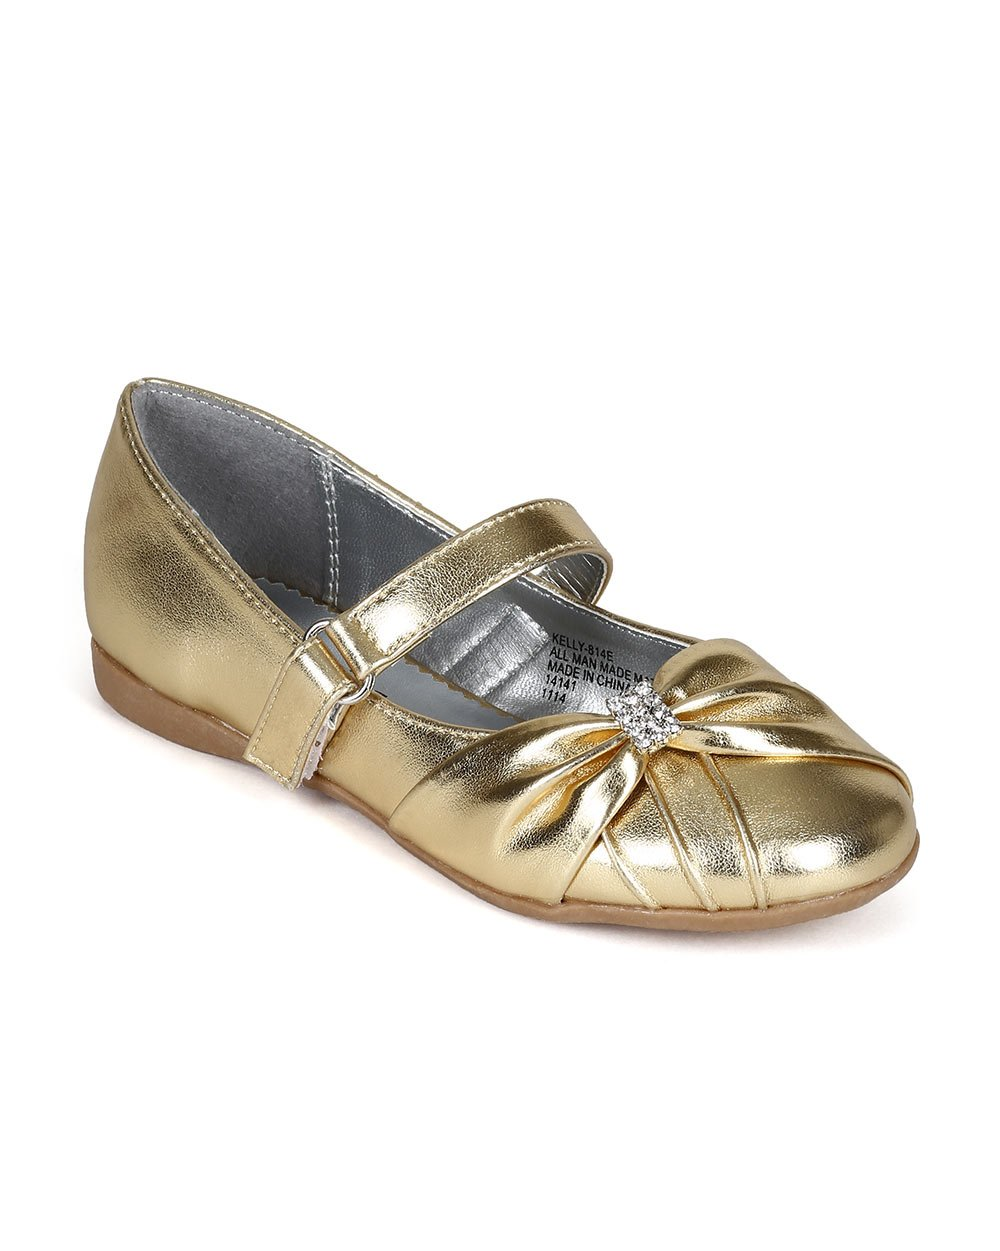 Metallic Leatherette Ruffled Rhinestones Decor Ballerina Flat (Toddler/Little Girl/Big Girl) CC56 - Gold (Size: Big Kid 4)